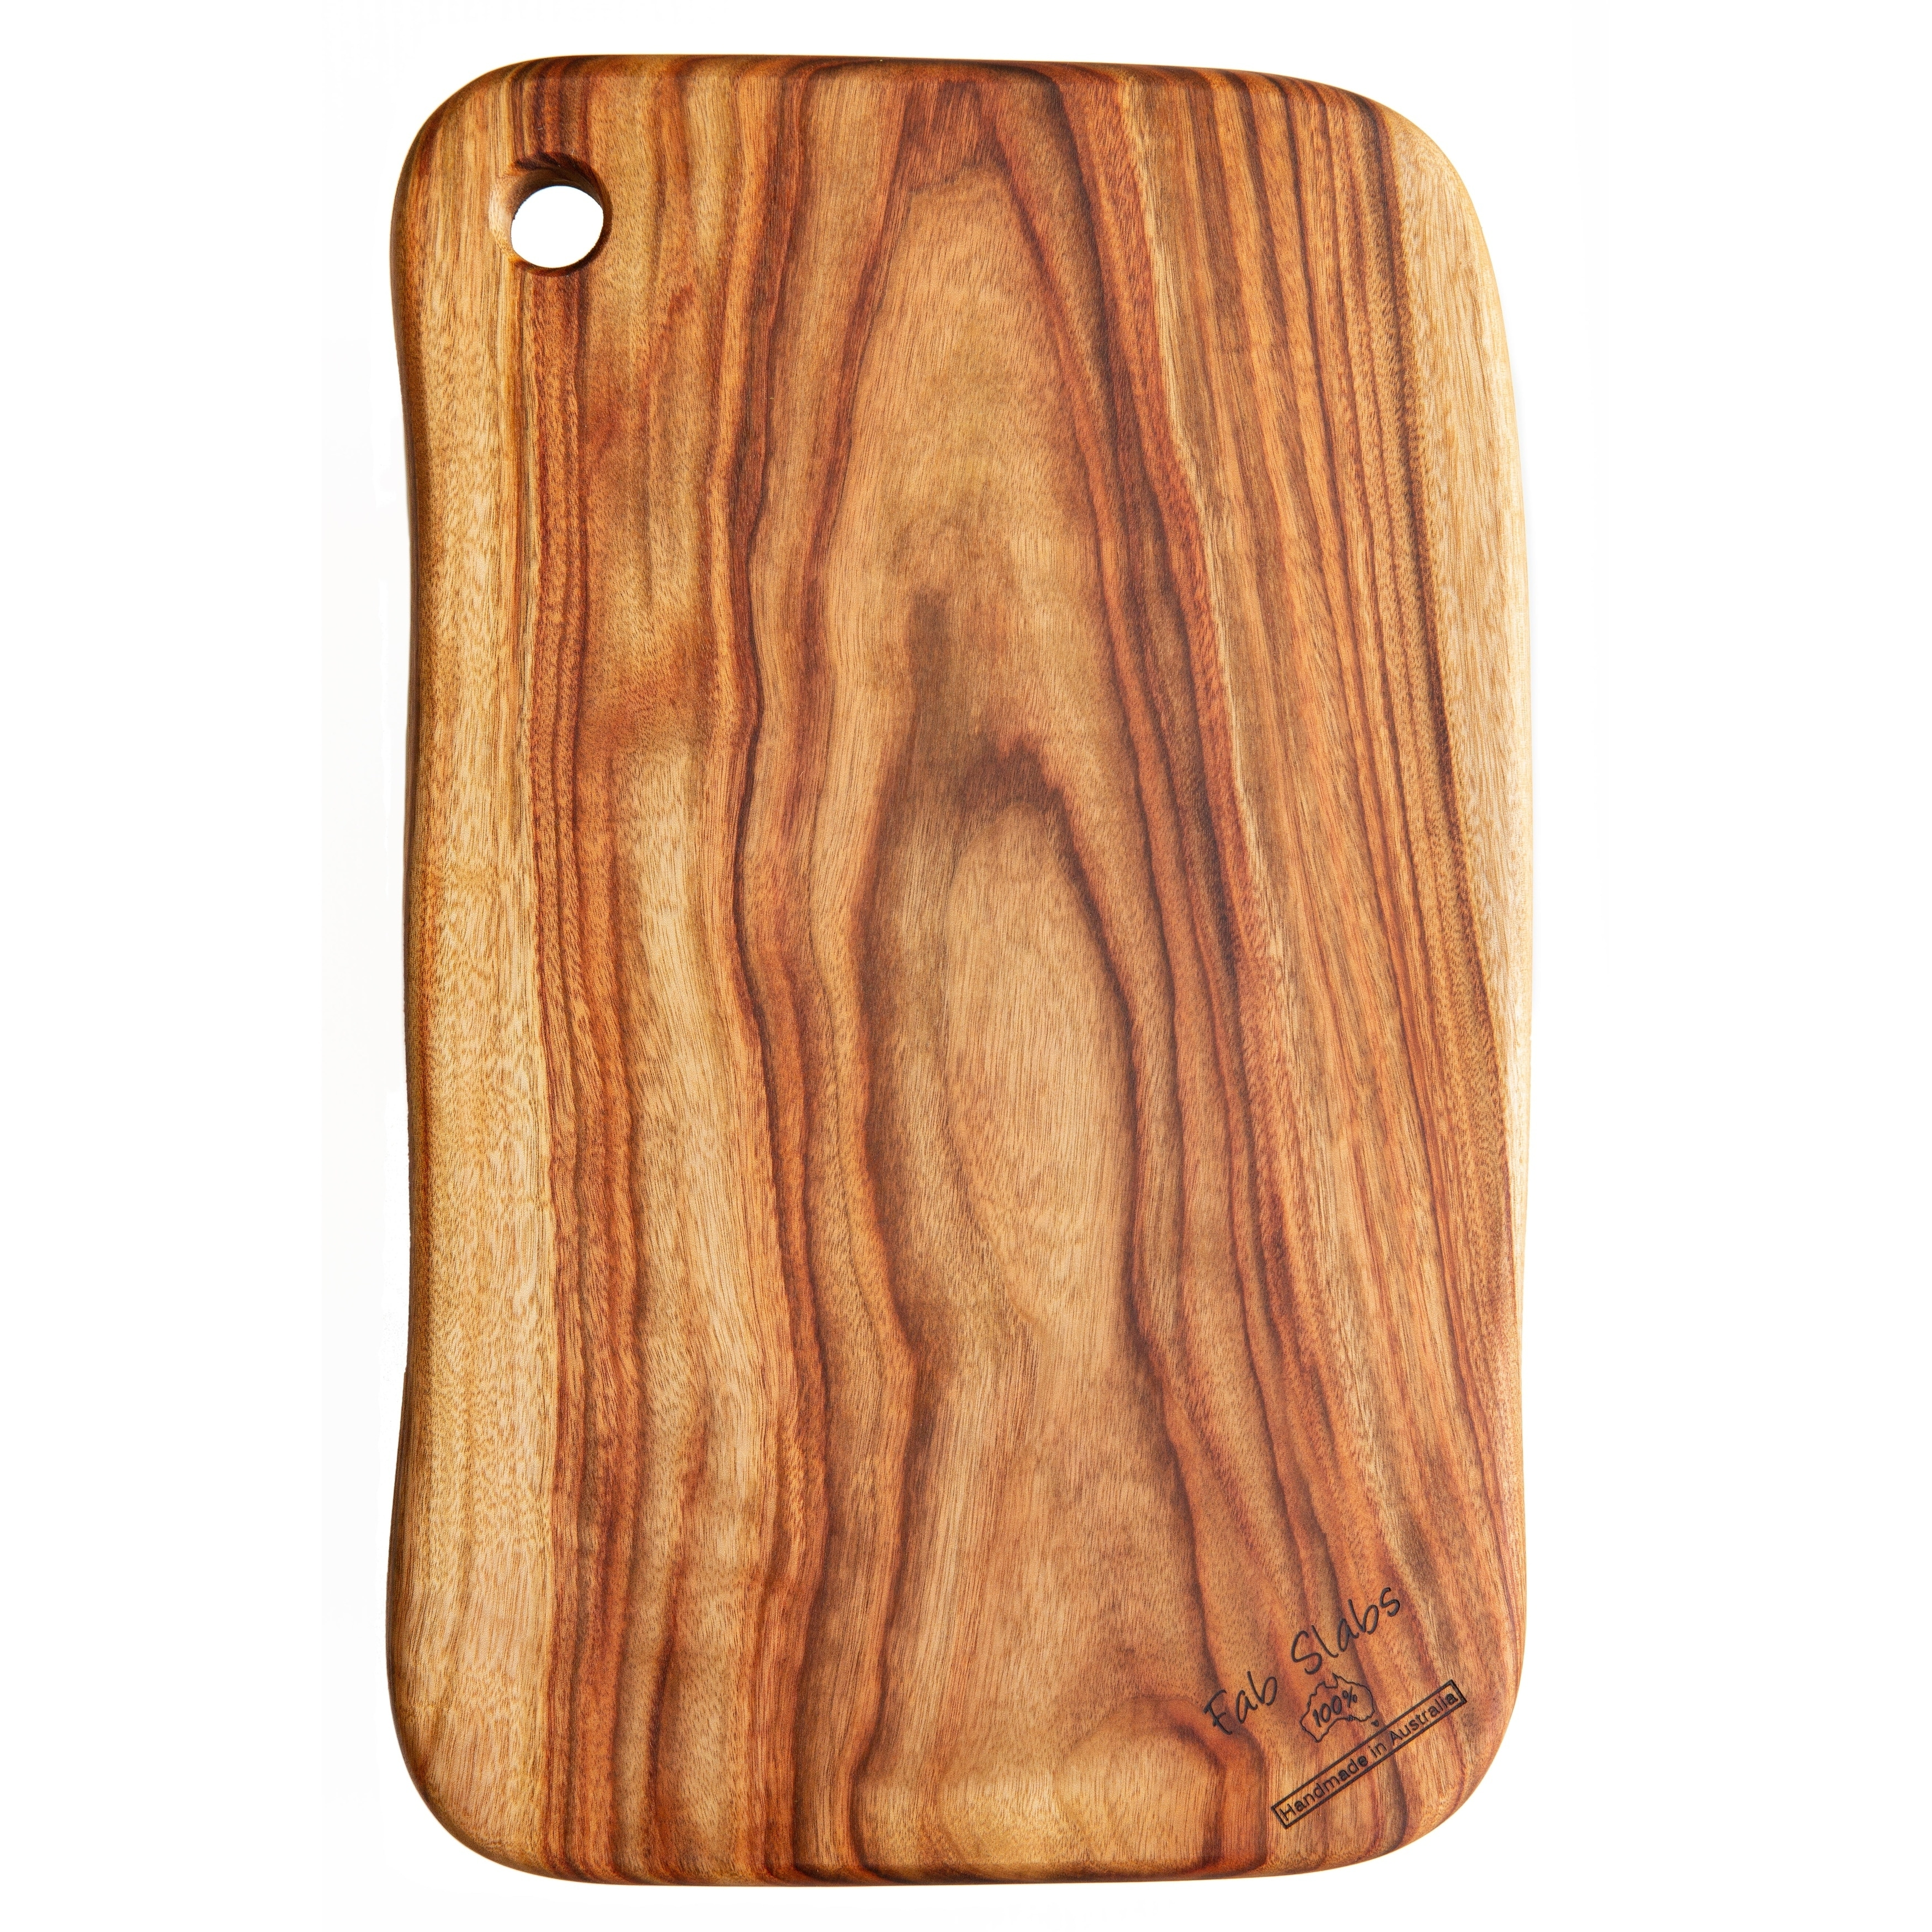 Fabslabs Natural Wood Camphor Laurel Large Premium Hygienic Cutting Board 18 9 X 10 63 Overstock 30567892